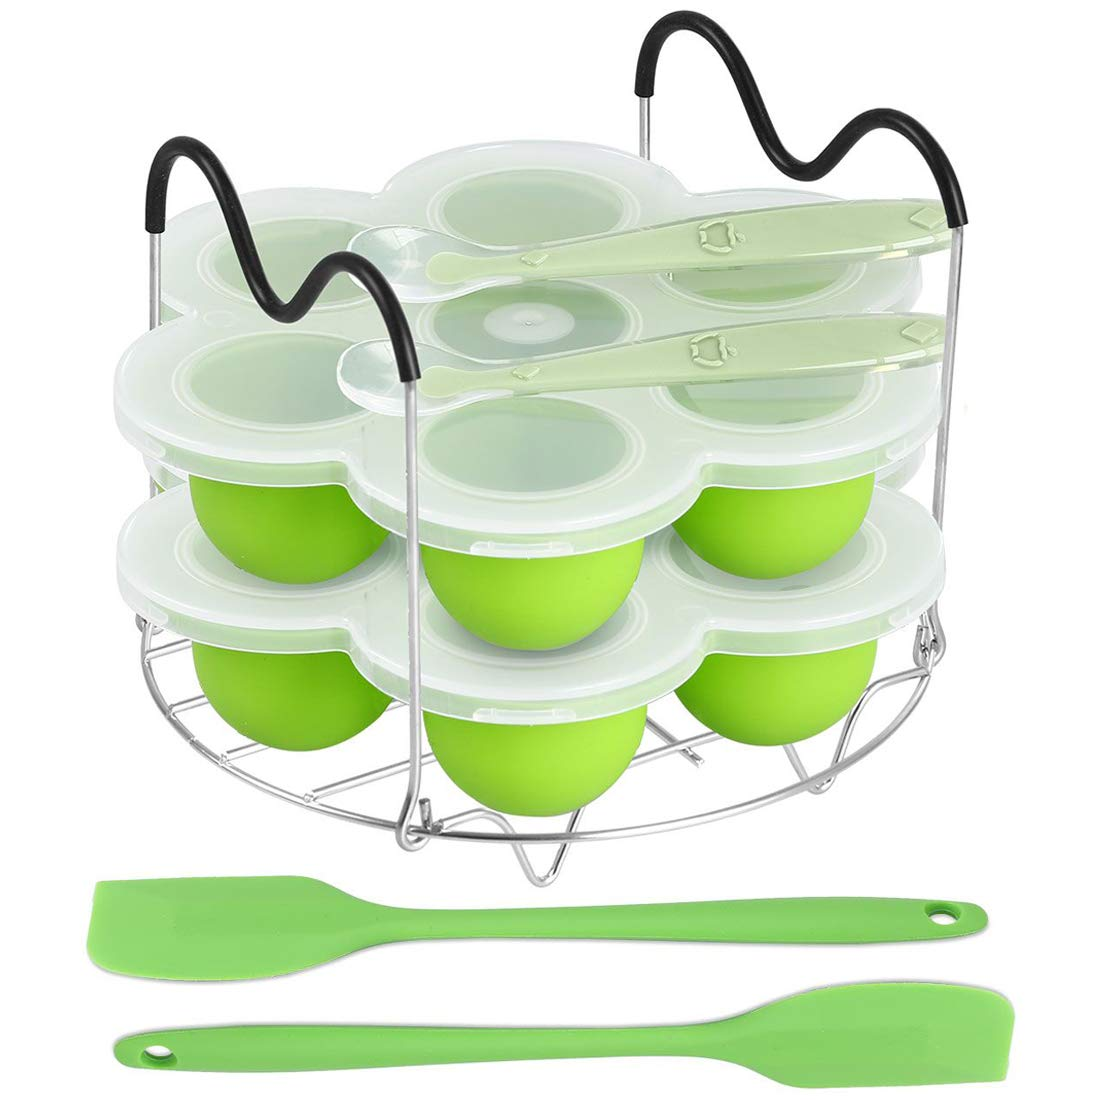 ROTTAY Silicone Egg Bites Molds and Steamer Rack Trivet with Heat Resistant Handles Fit Instant Pot Accessories, 7pcs/set for 6qt & 8qt Electric Pressure Cooker - With 2 Spoons and Silicone spatula